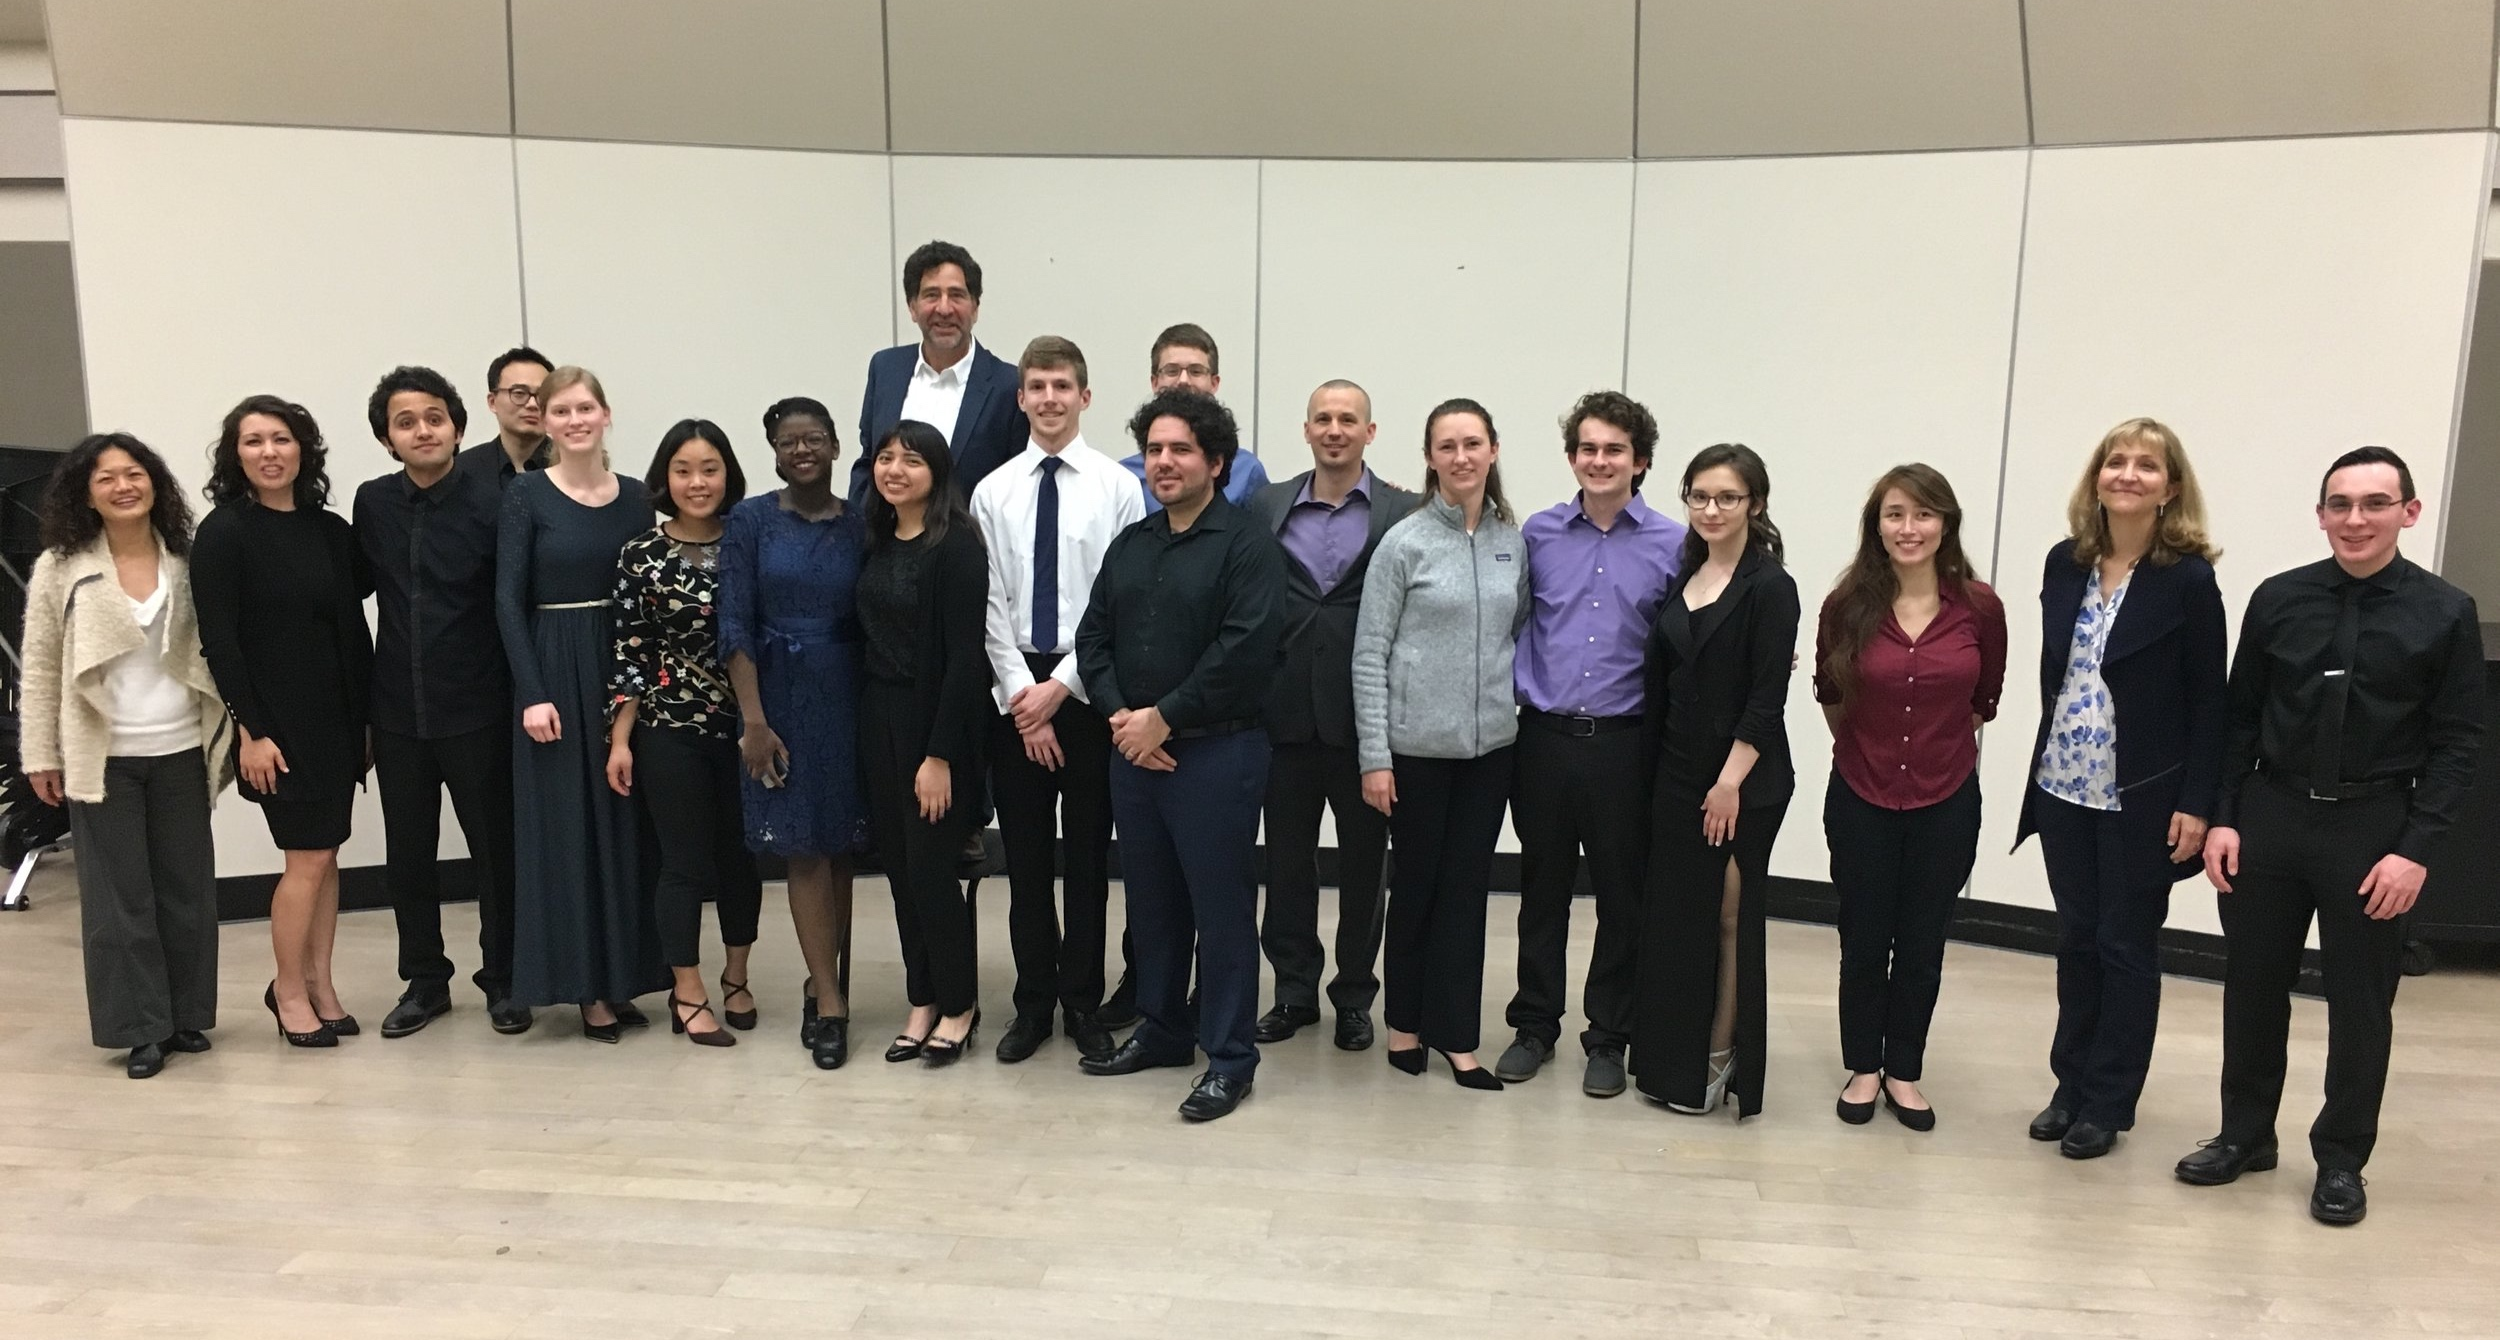 Participating musicians in the 2019 Watson Family Chamber Music Competion, Sac State University